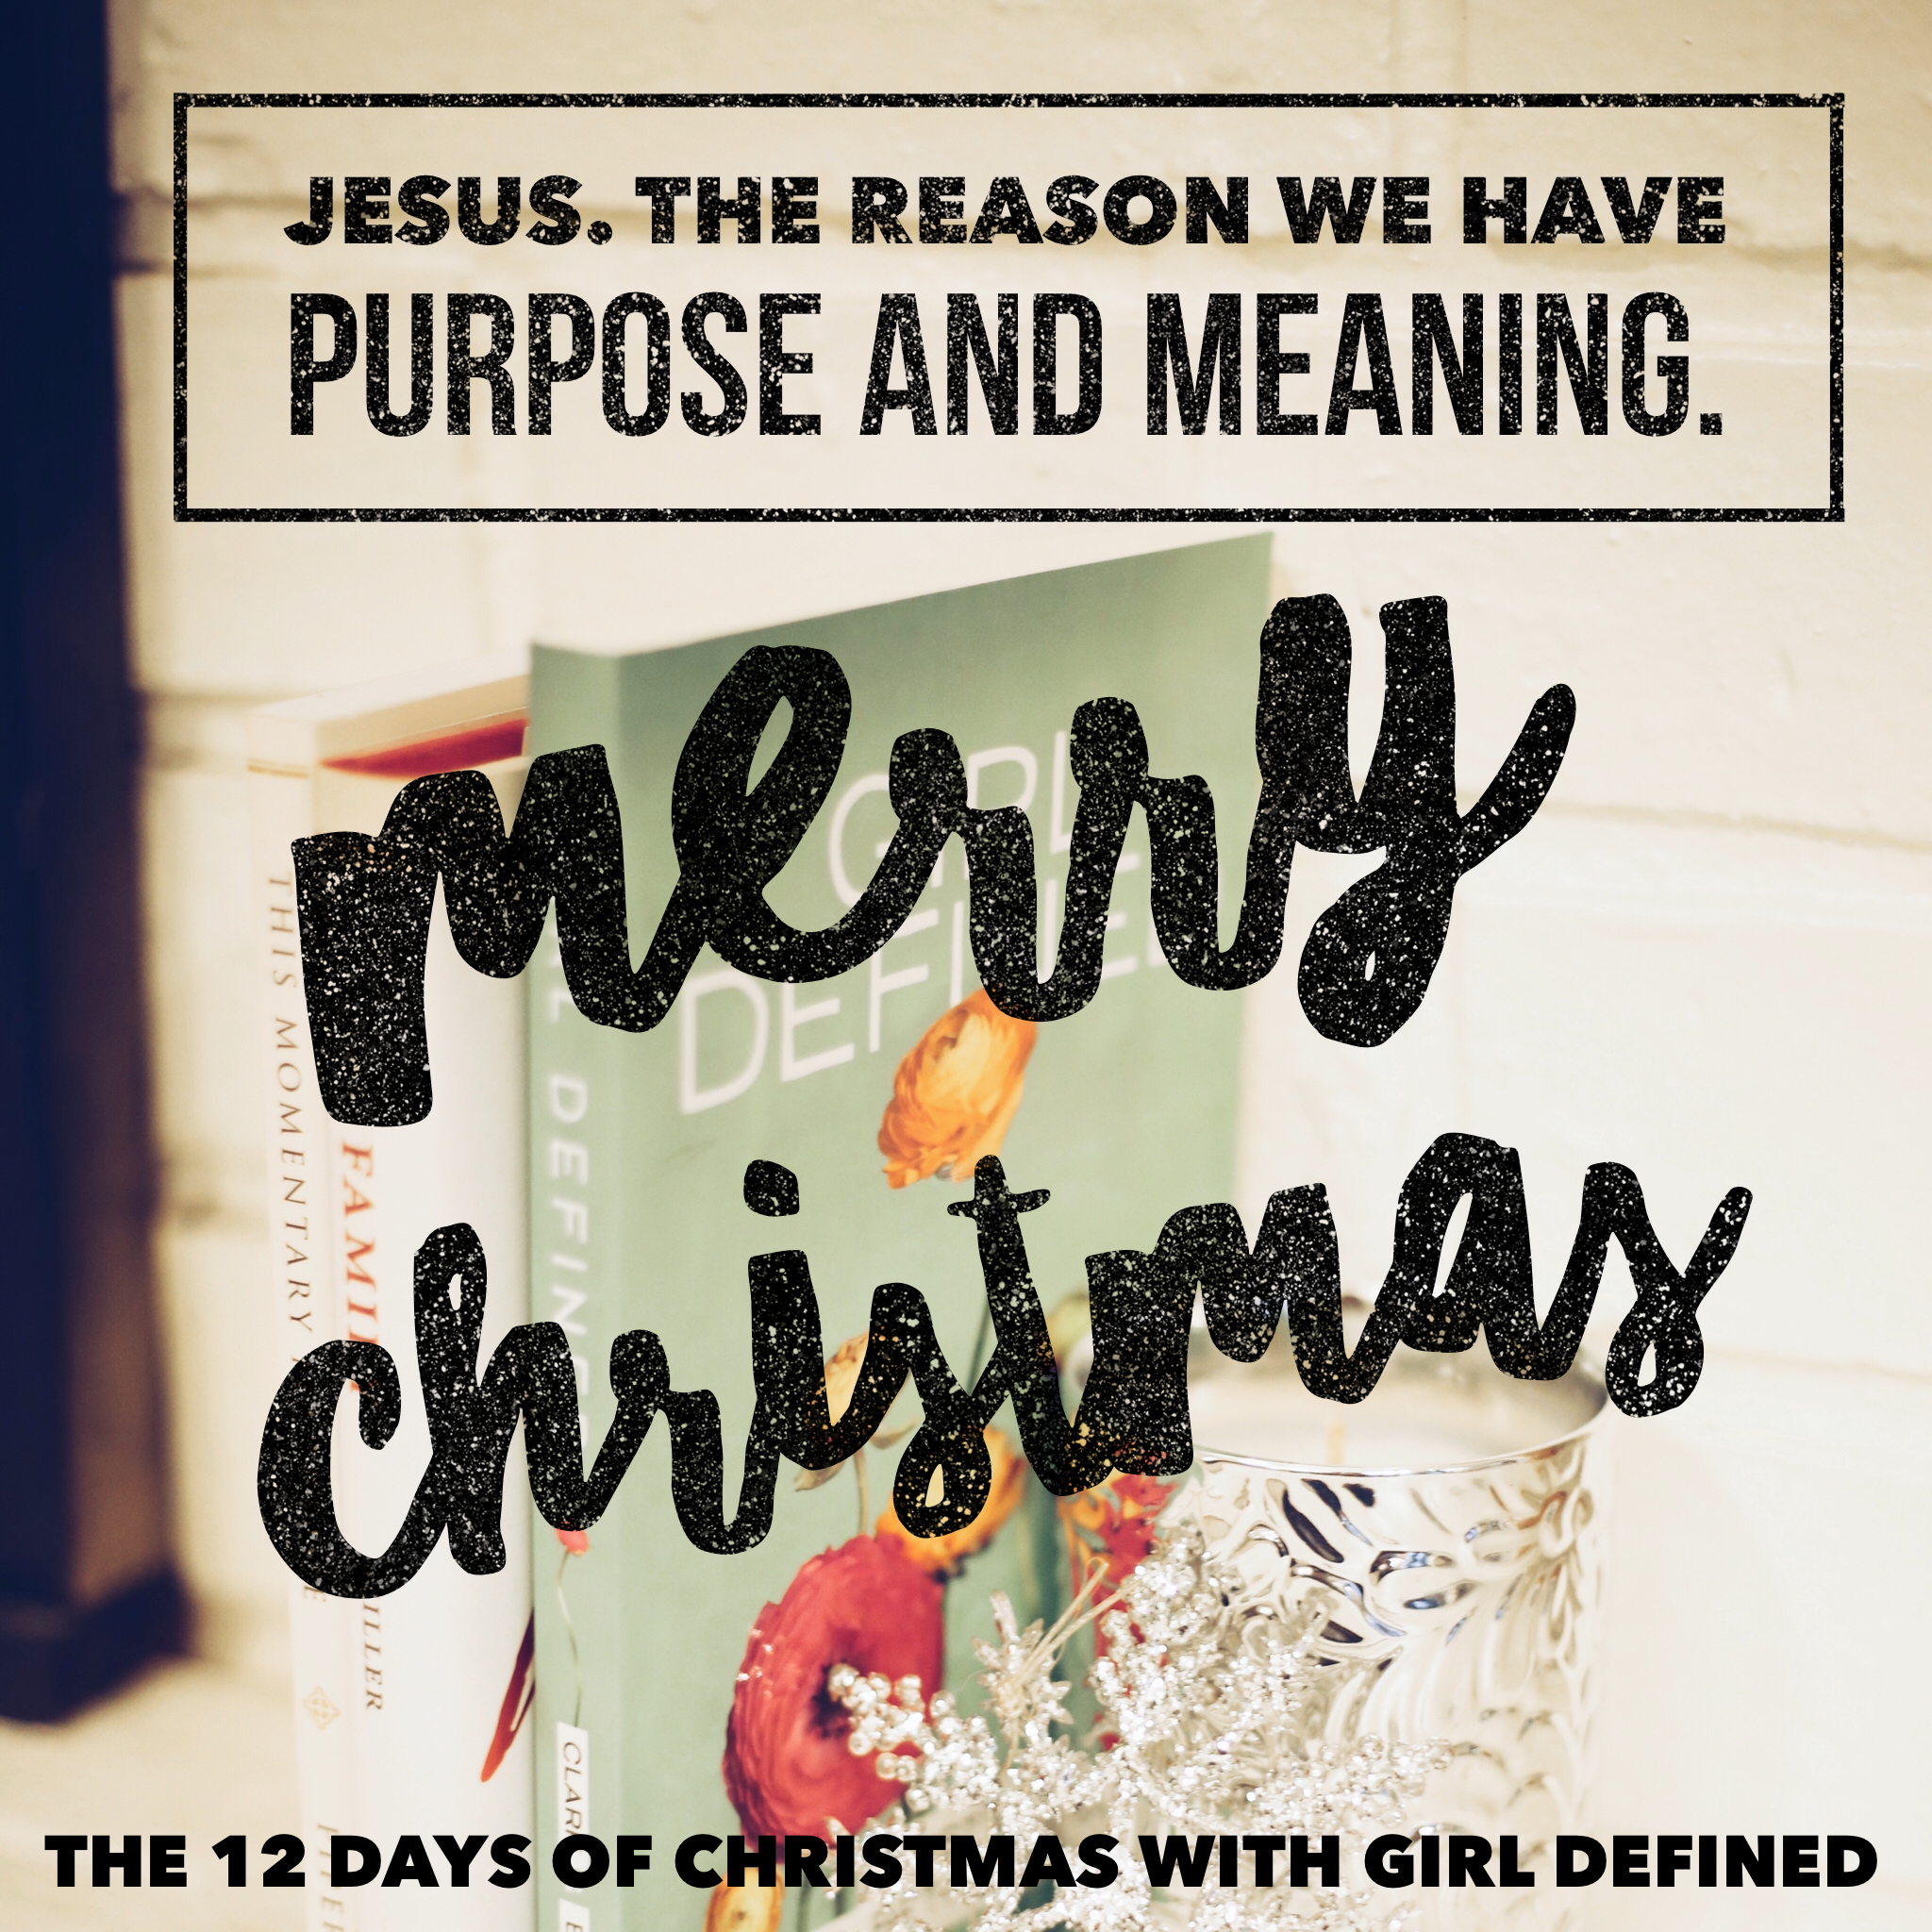 Meaning of 12 days of christmas - Day 8 Free Giveaway Join Us Today For The 12 Days Of Christmas